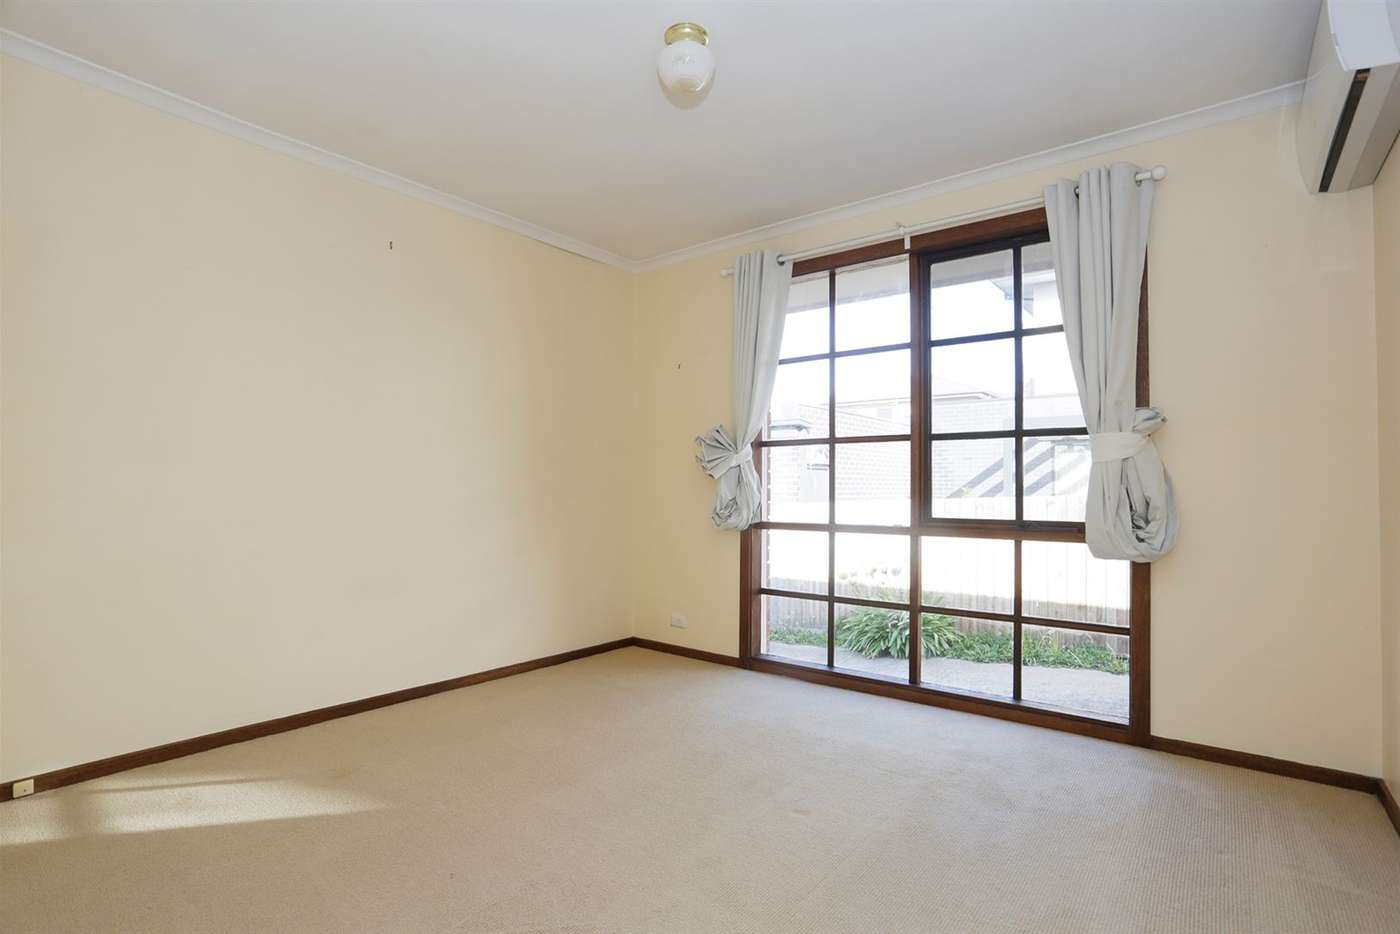 Seventh view of Homely unit listing, 1/32 Lee Avenue, Mount Waverley VIC 3149